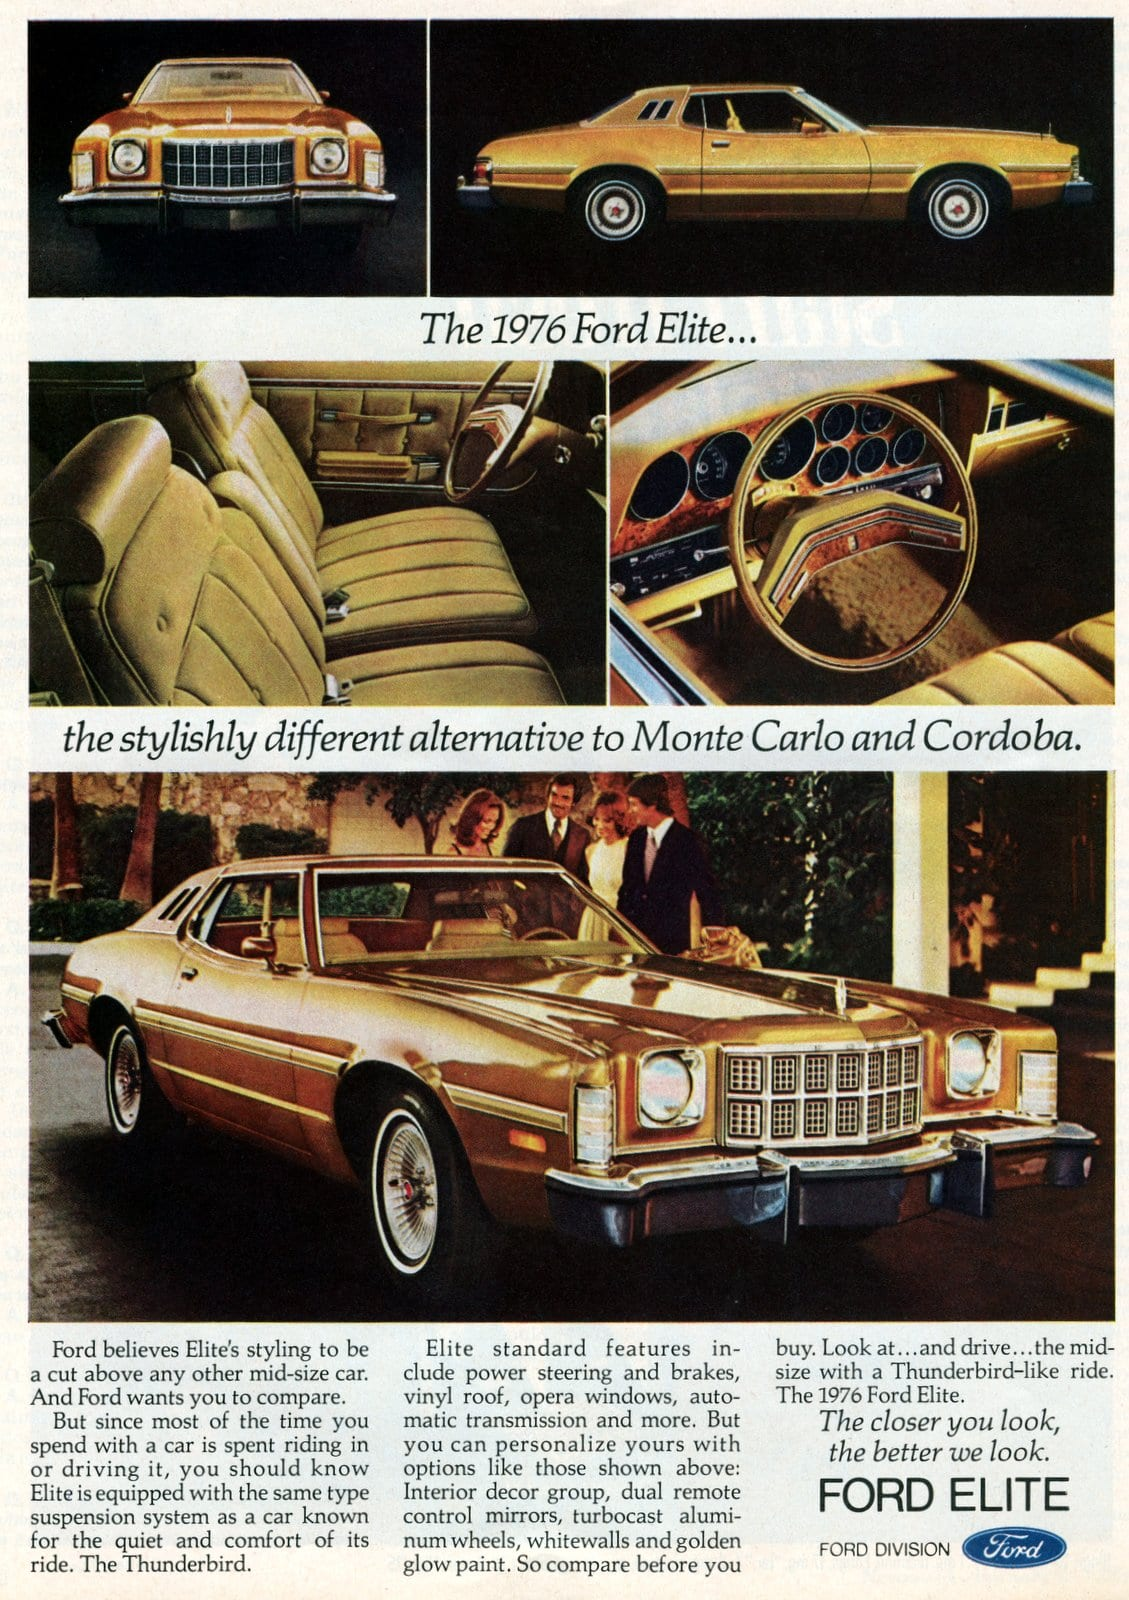 The 1976 Ford Elite cars